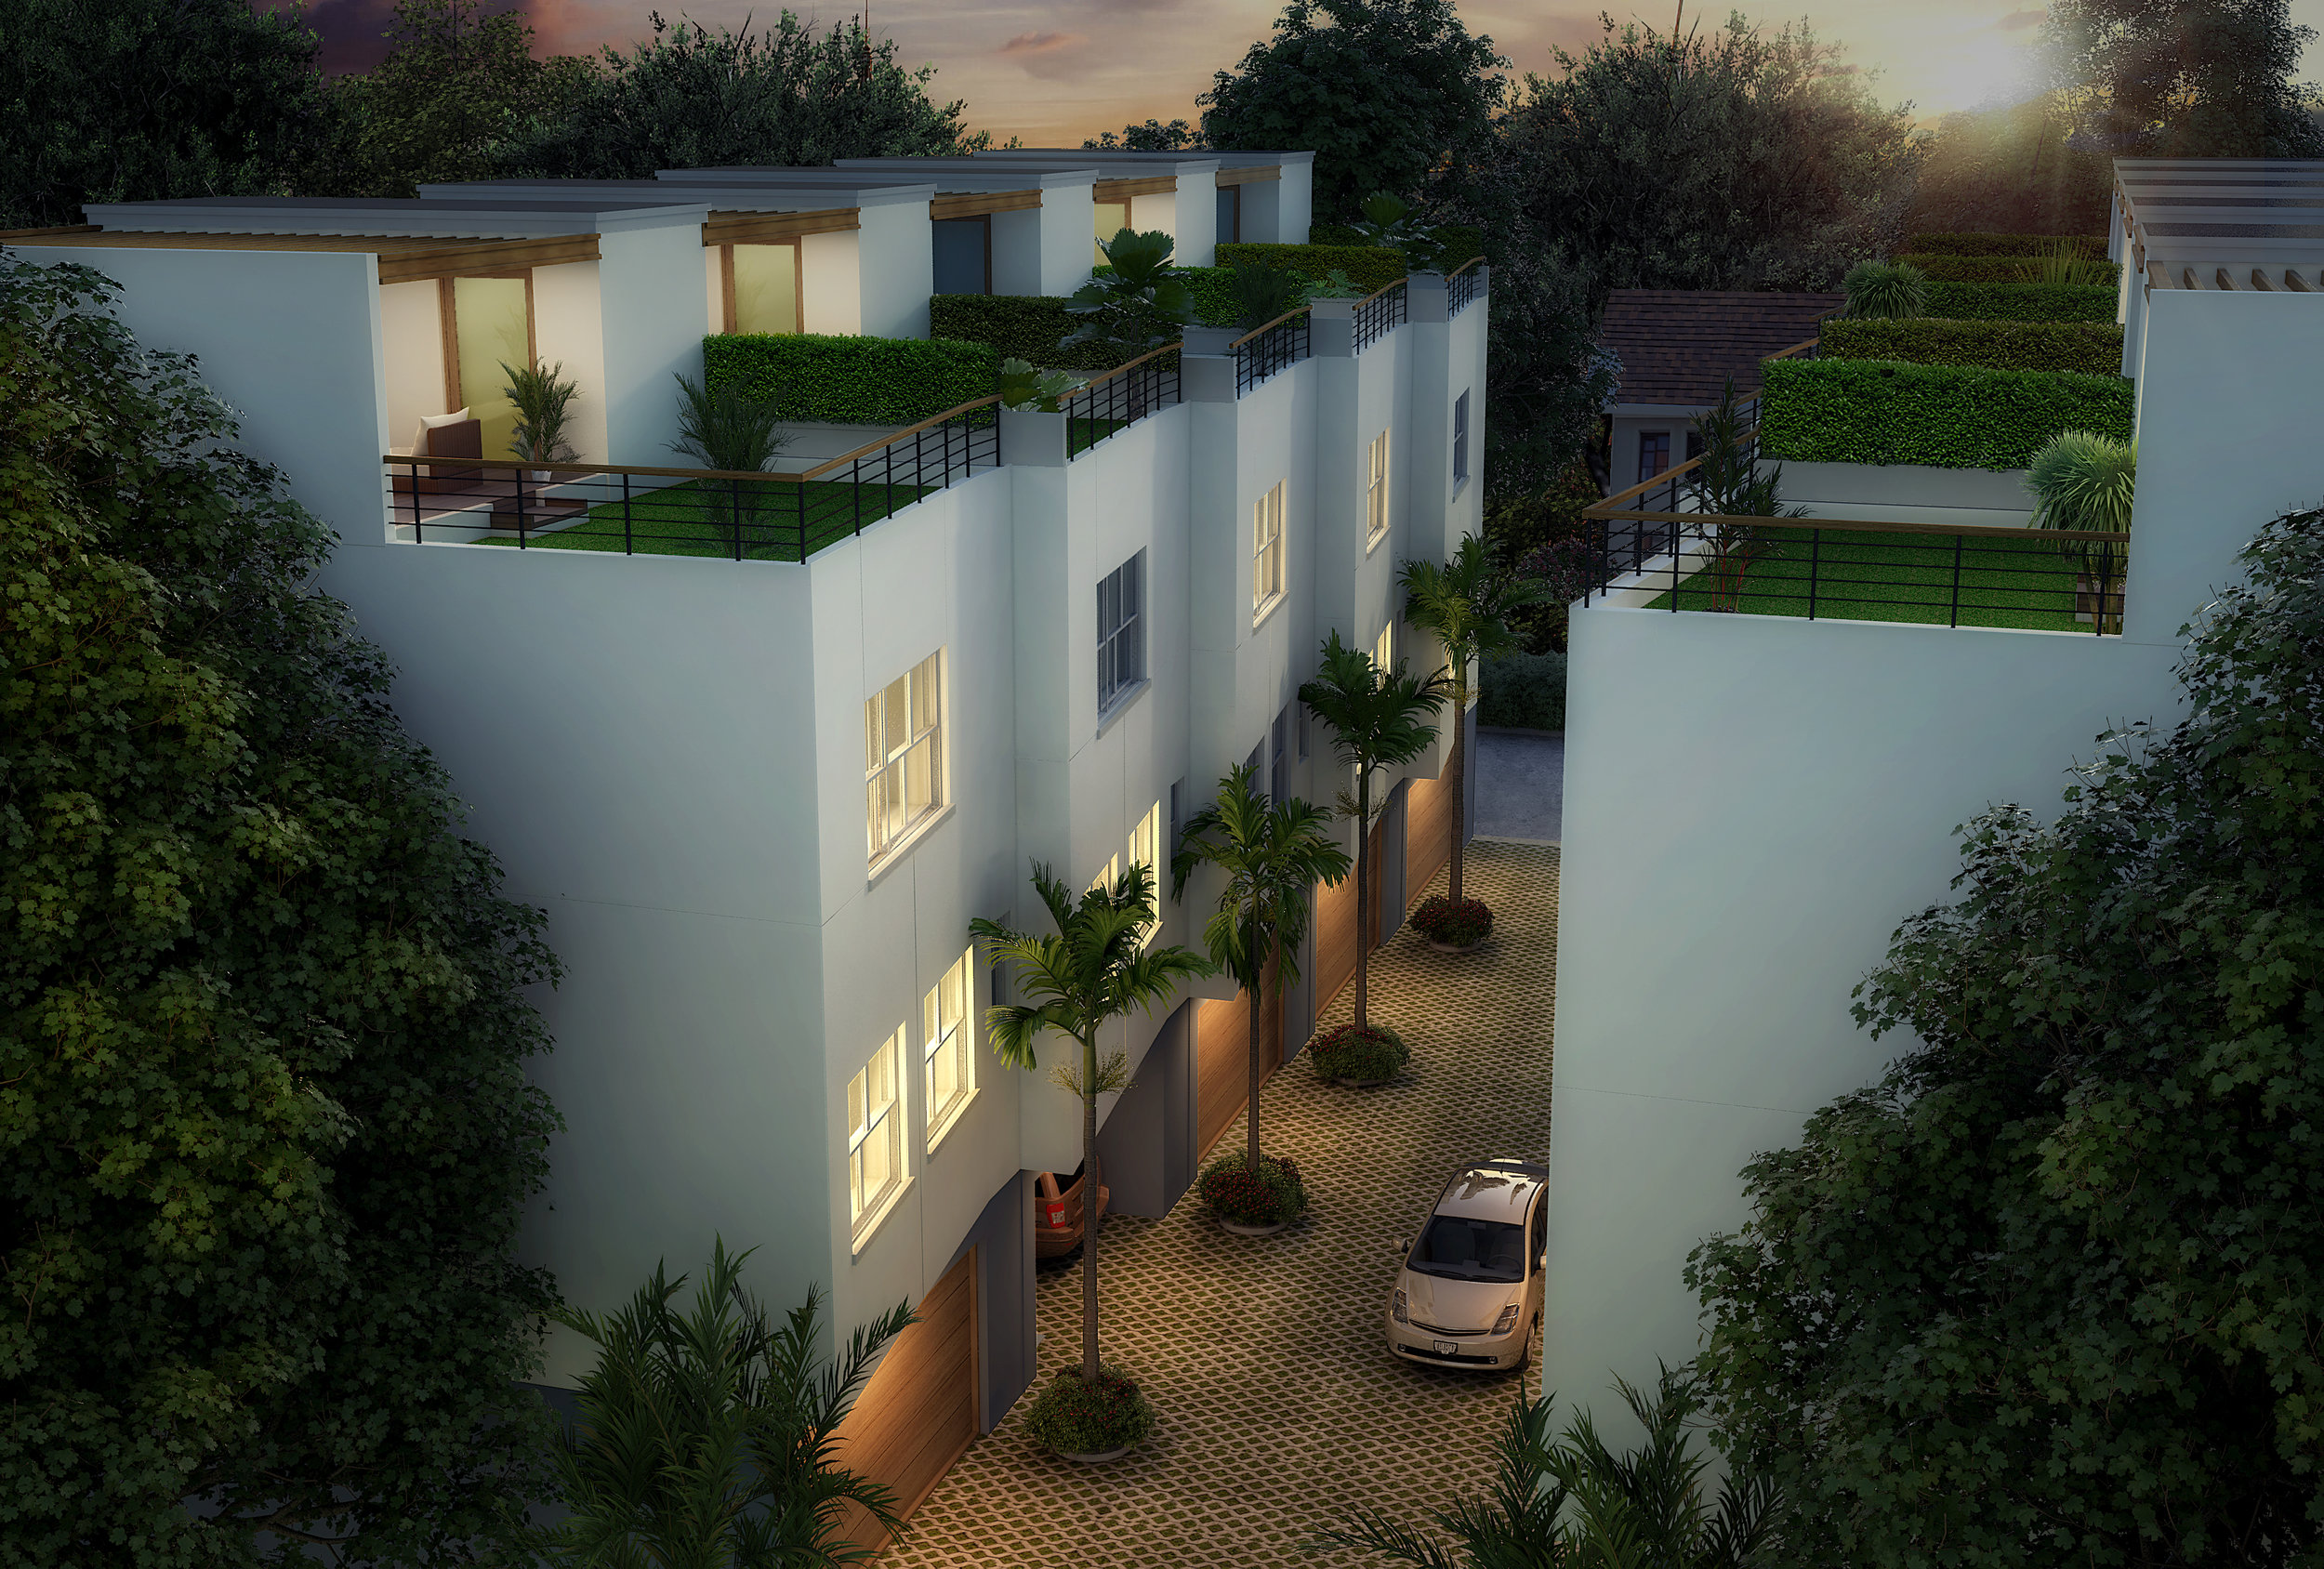 Rendering of the Fifth Avenue Townhomes